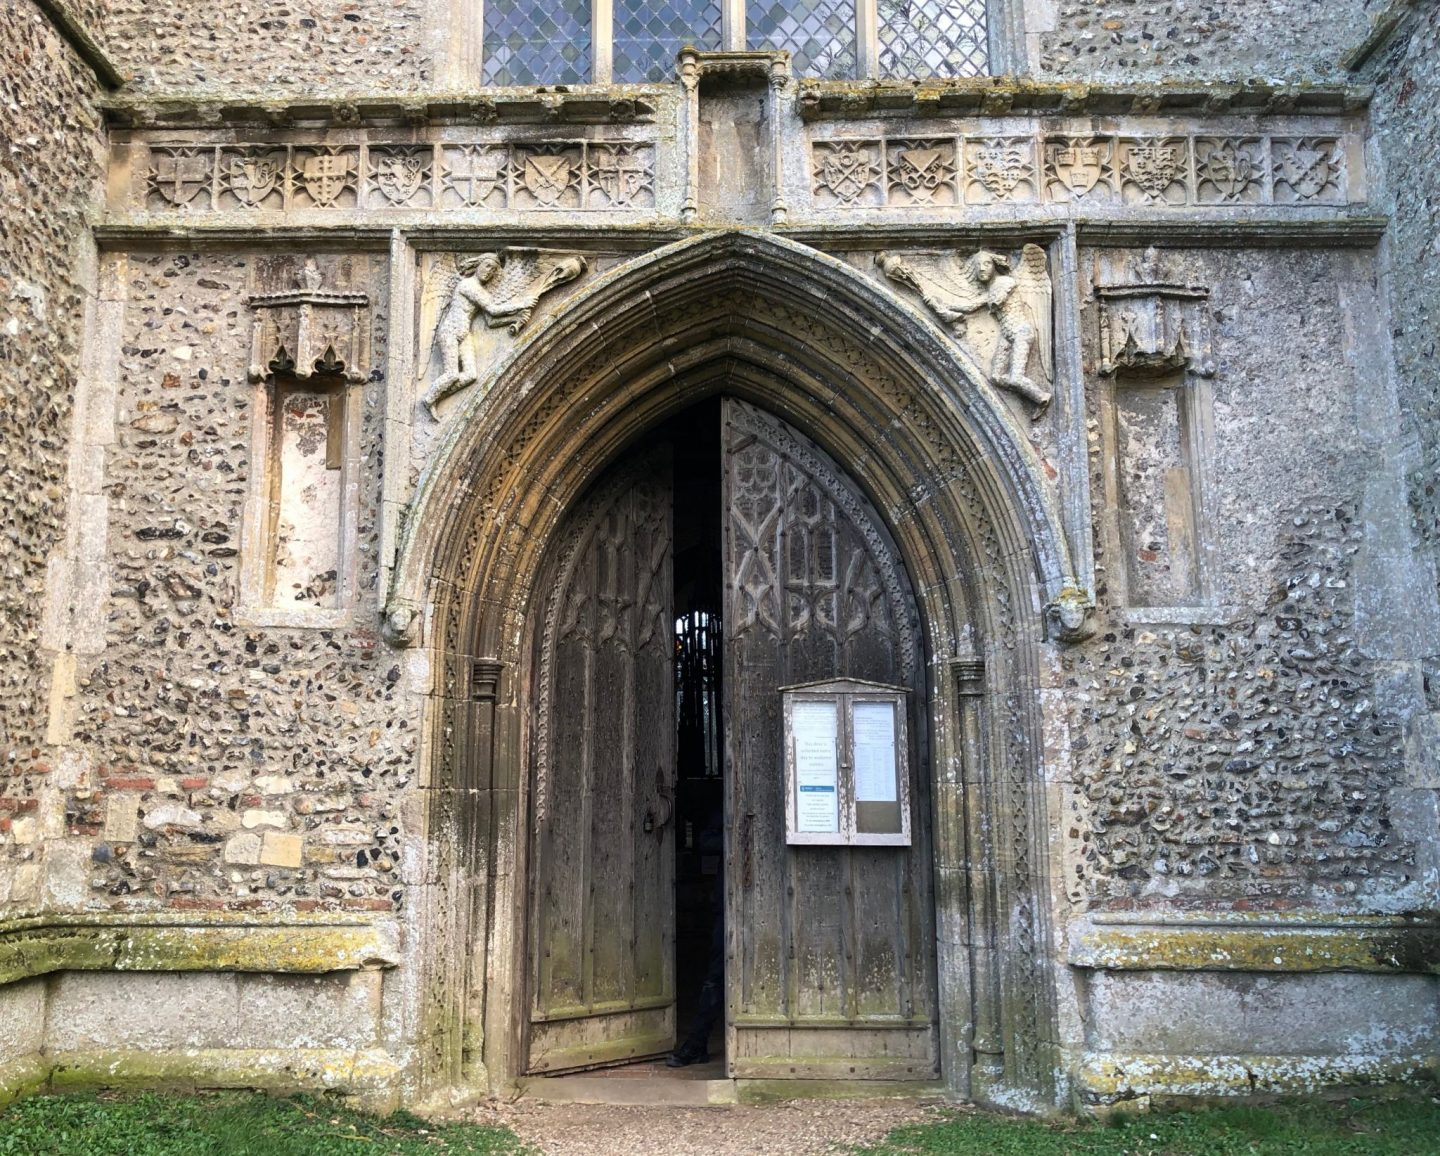 West door and decoration of the west end of Salle church